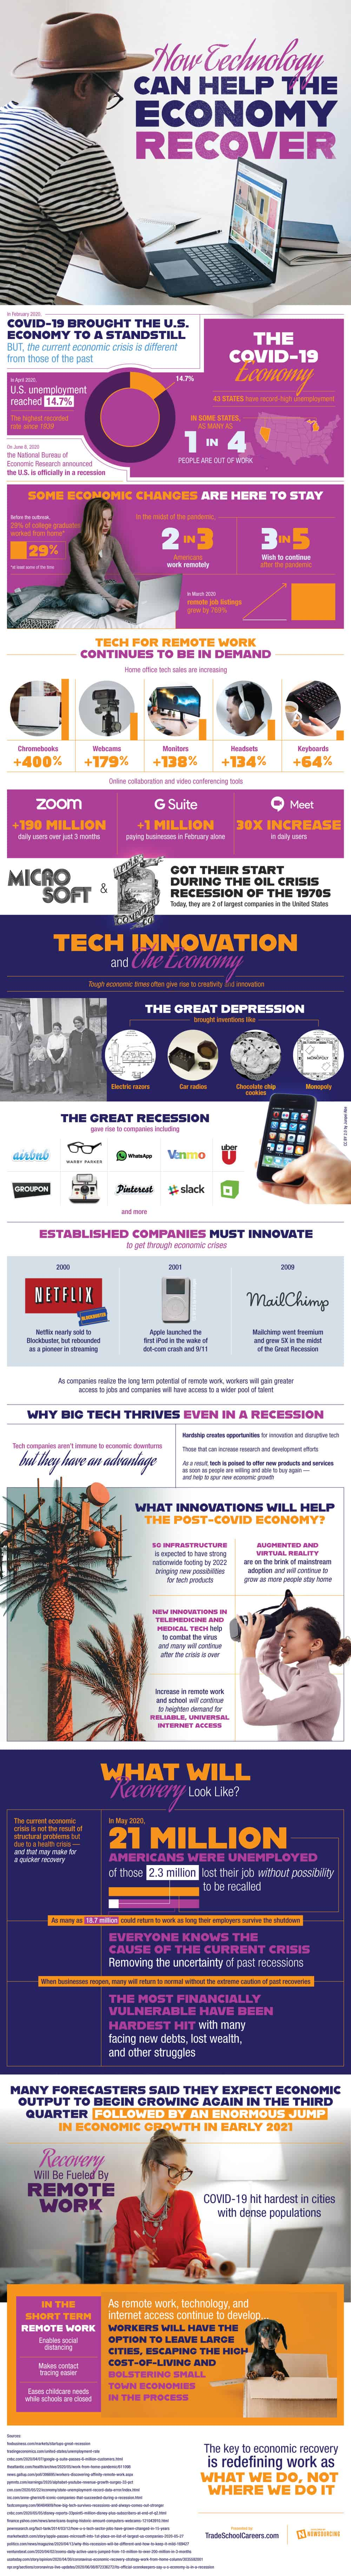 Covid-19: How Technology Can Help The Business [Infographic]